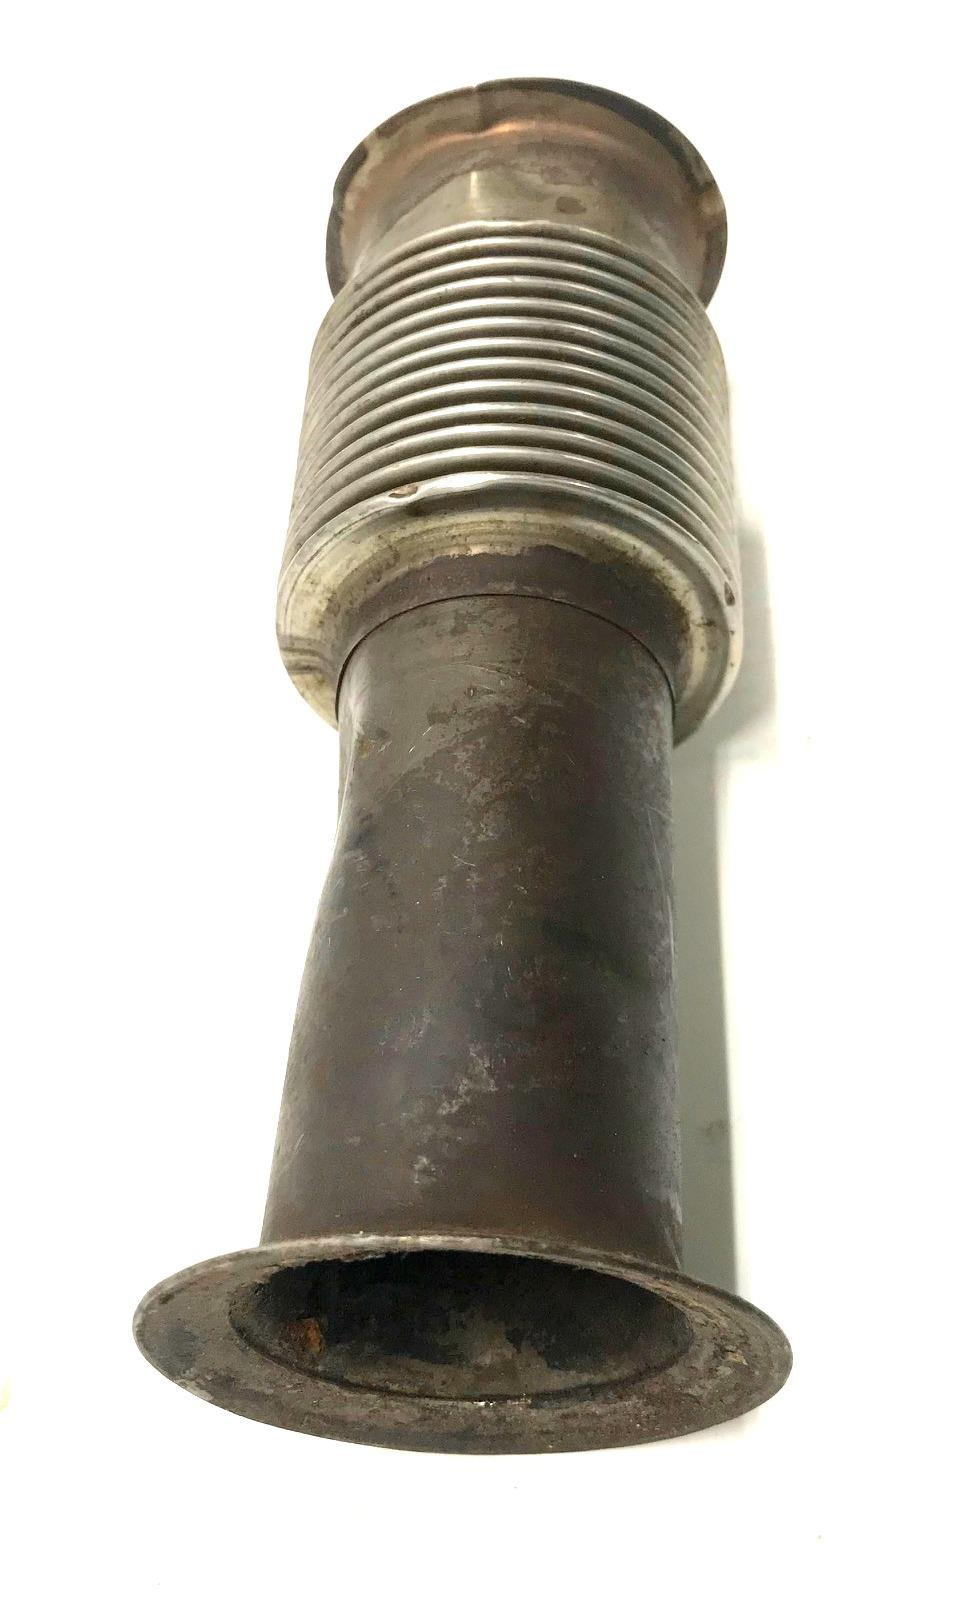 HM-1087 | HM-1087  6.5L GEP Turbo Exhaust Pipe HMMWV (4)(USED).jpg